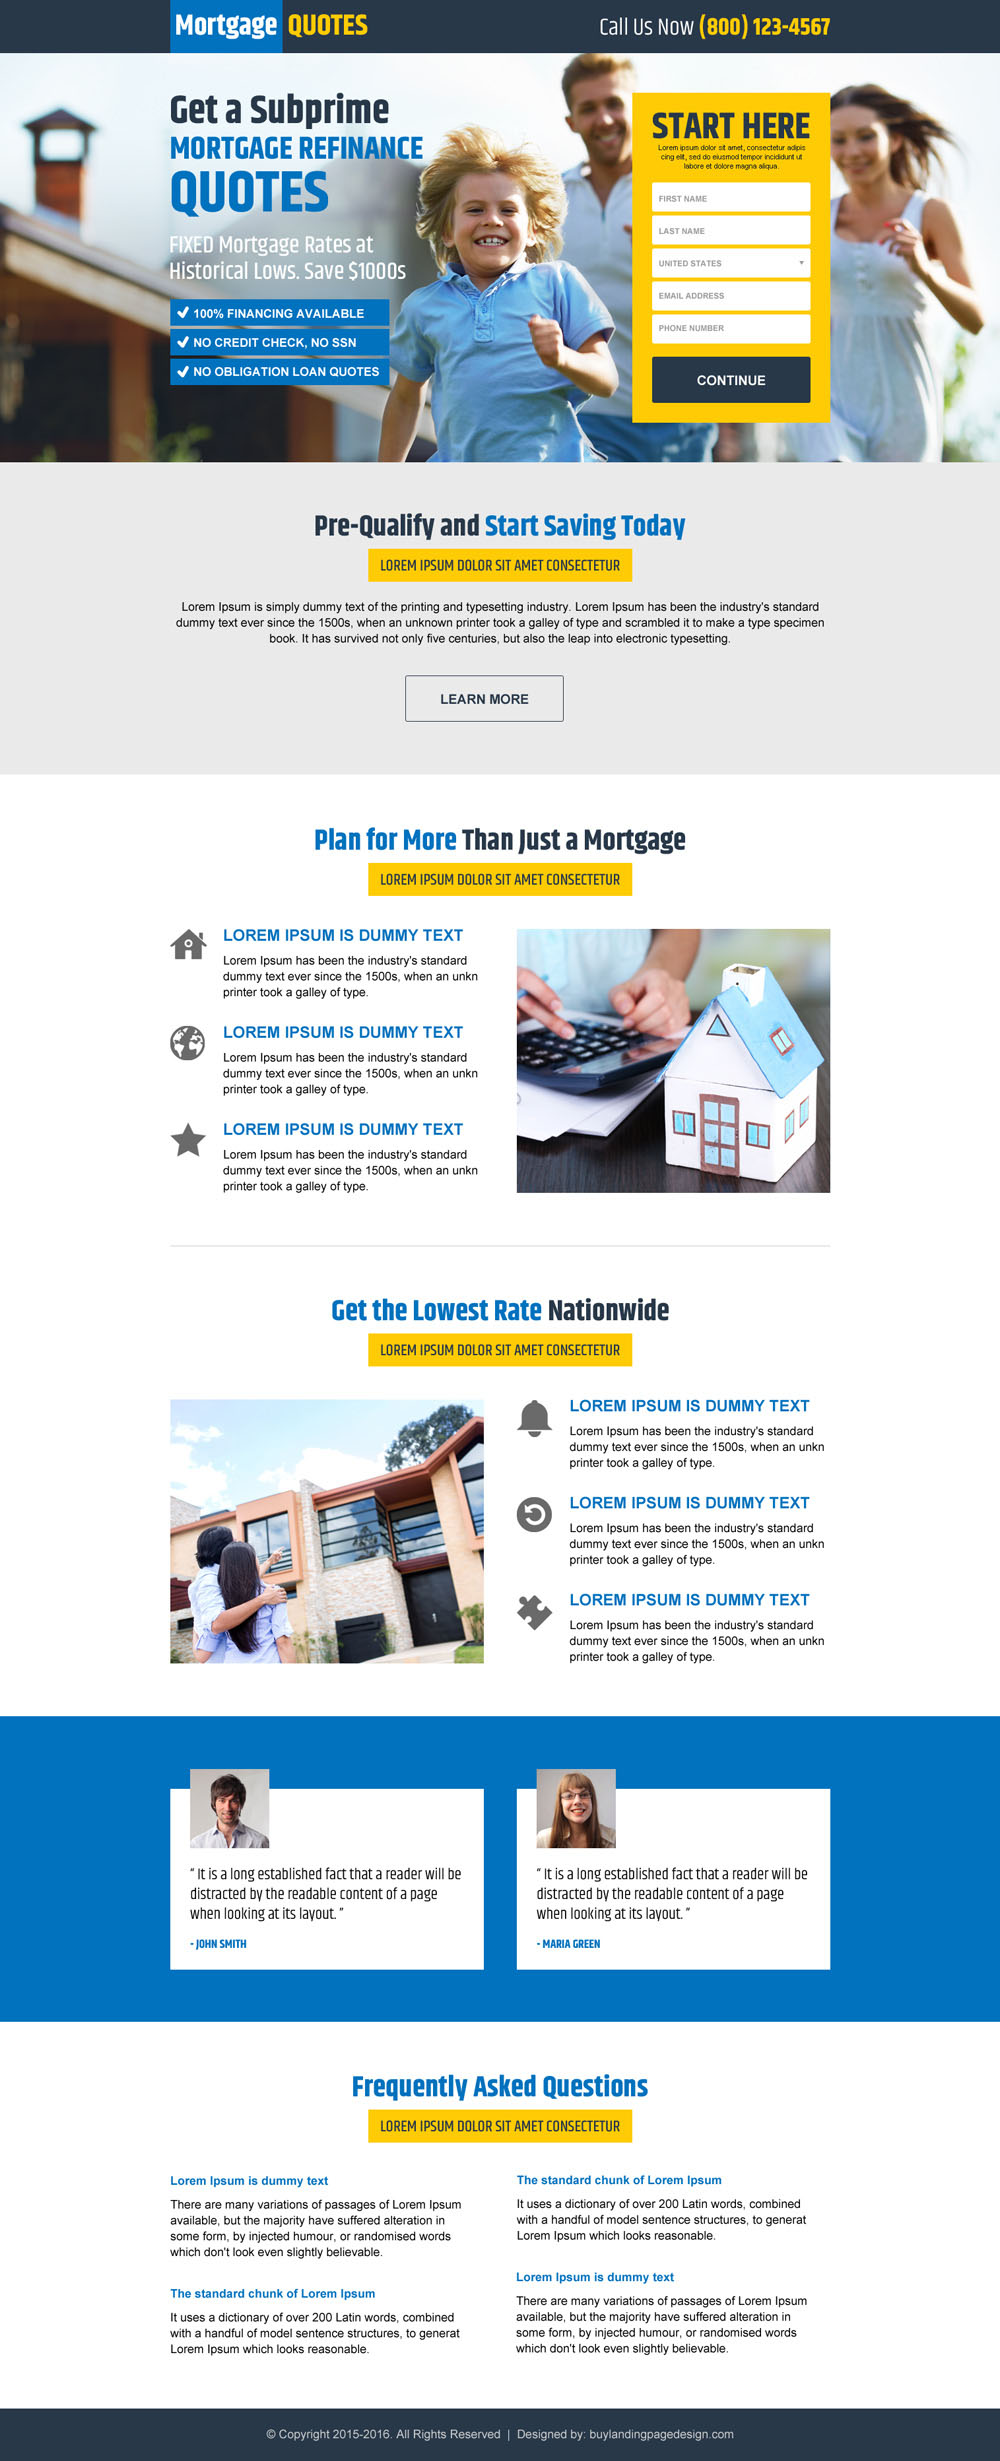 lowest-rate-mortgage-finance-quote-service-lead-generation-landing-page-design-015